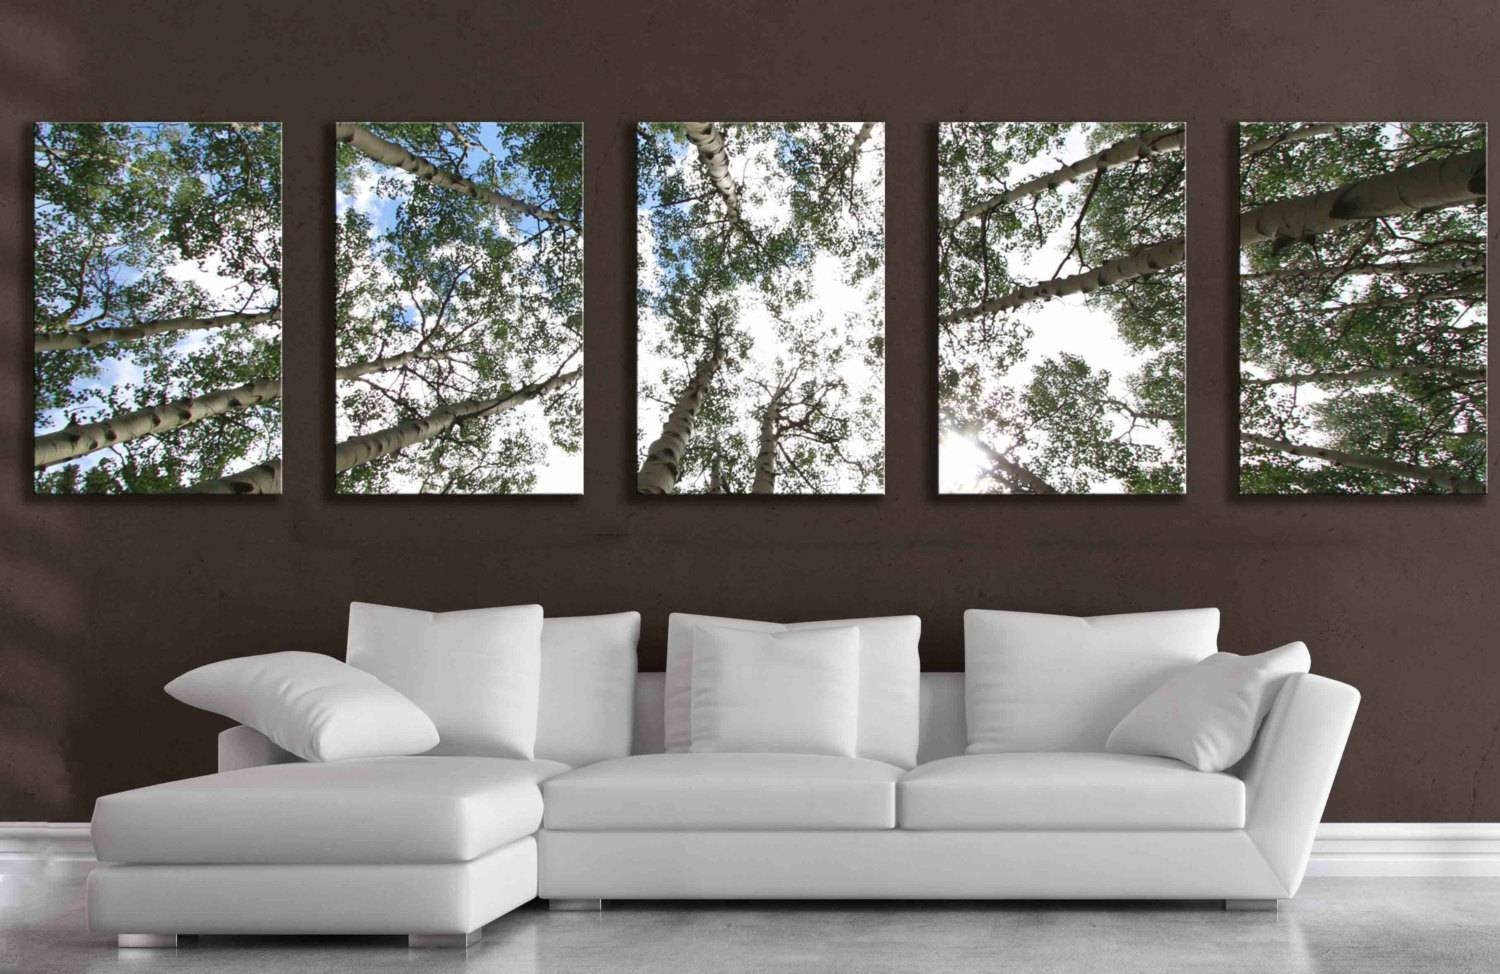 Large 5 Panel Wall Art Aspen Tree Canvas Decor Five Multipiece Intended For Most Up To Date Aspen Tree Wall Art (View 3 of 20)